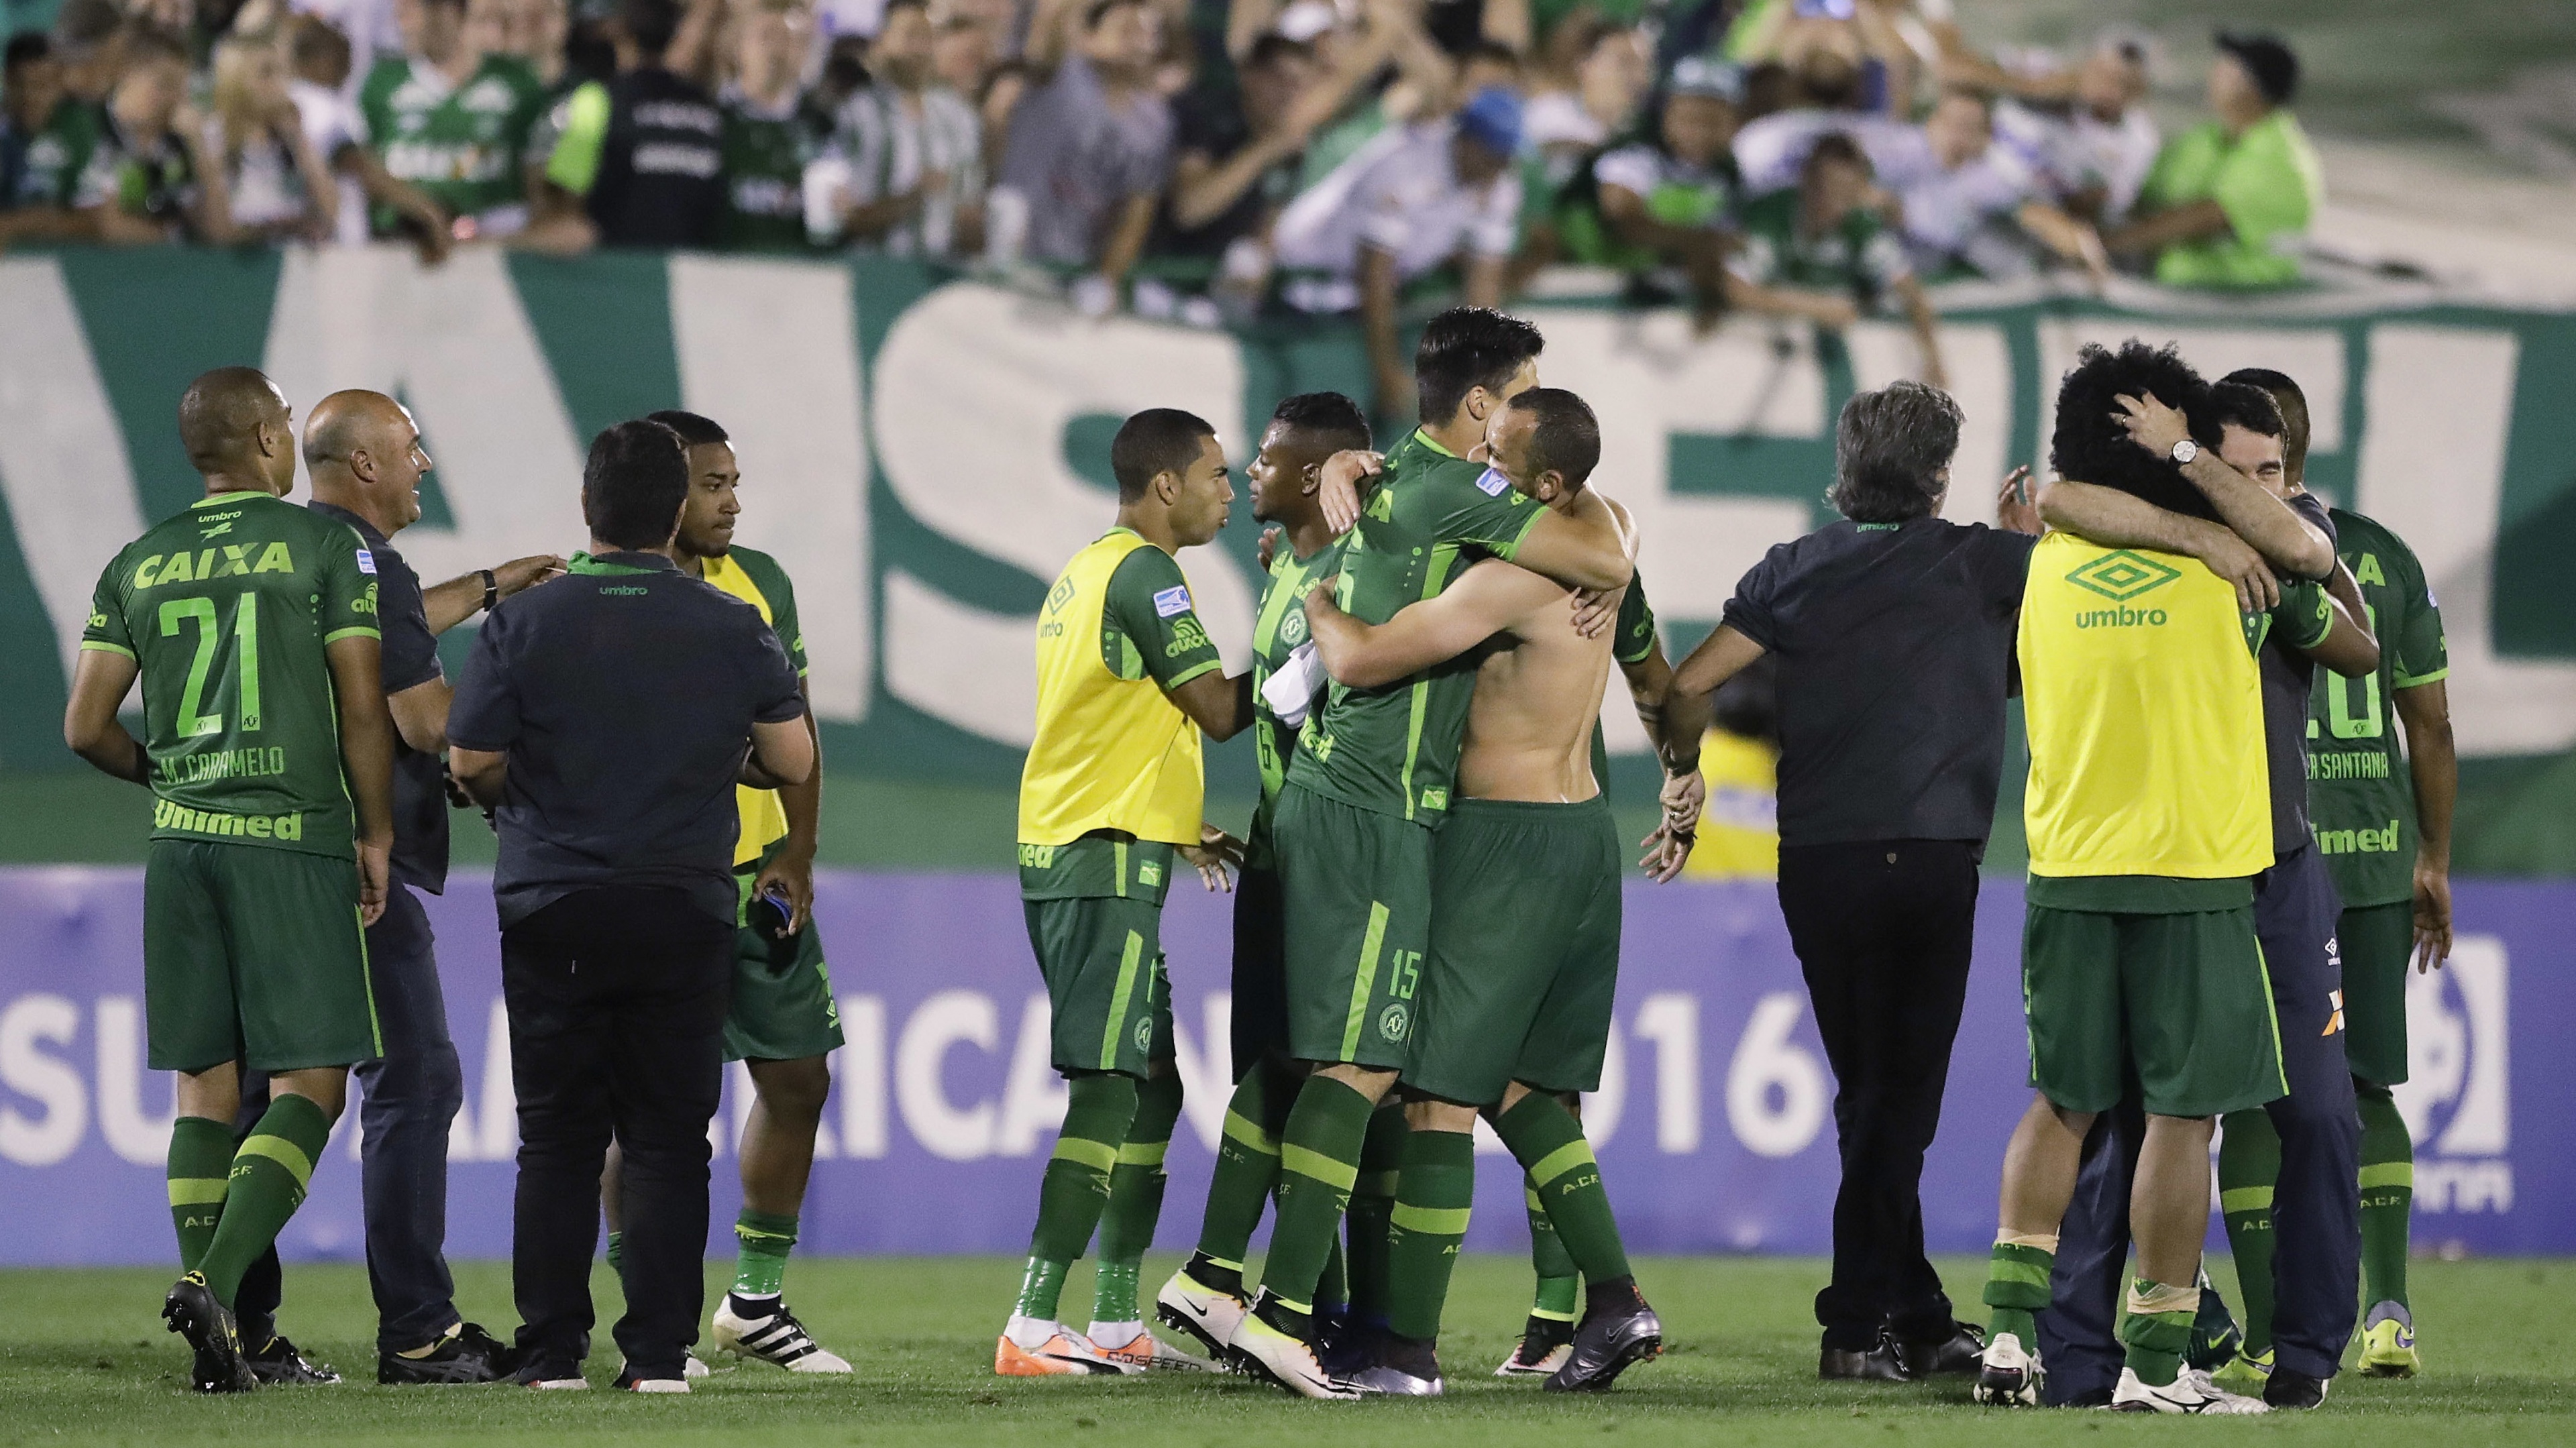 The flight was said to be carrying players from first division Chapecoense.